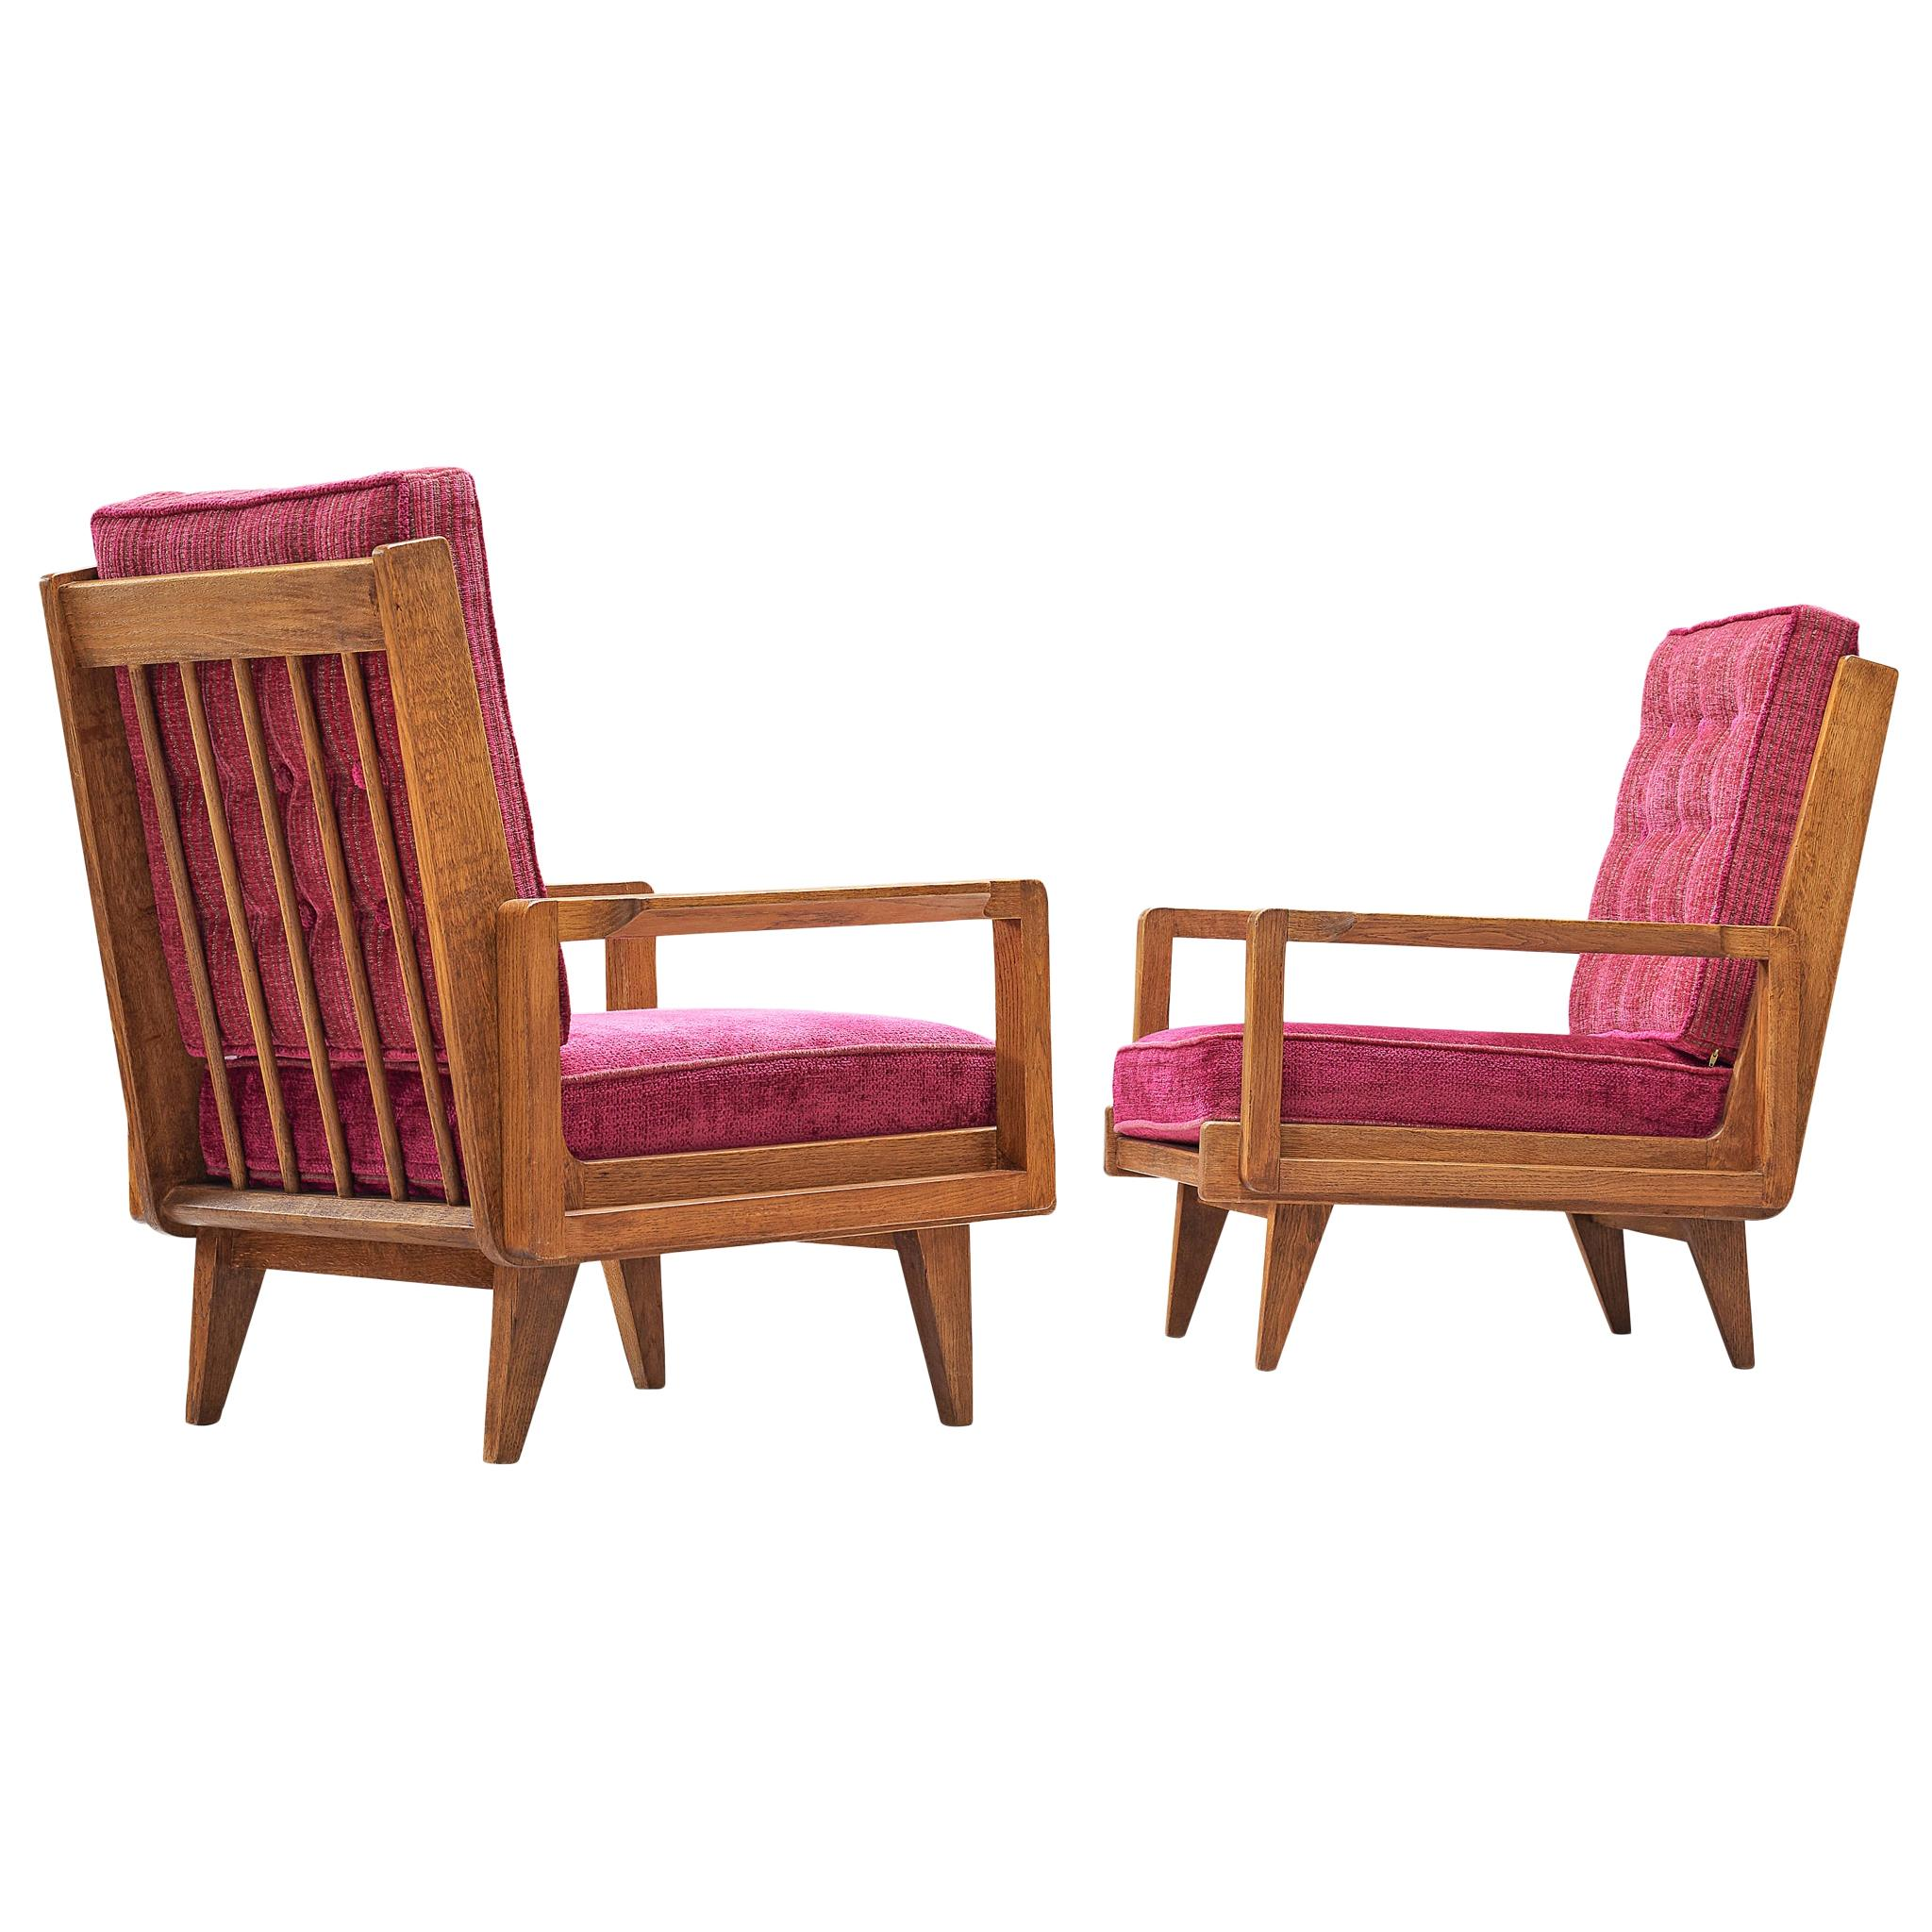 Guillerme et Chambron Pair of Lounge Chairs in Oak and Pink Upholstery